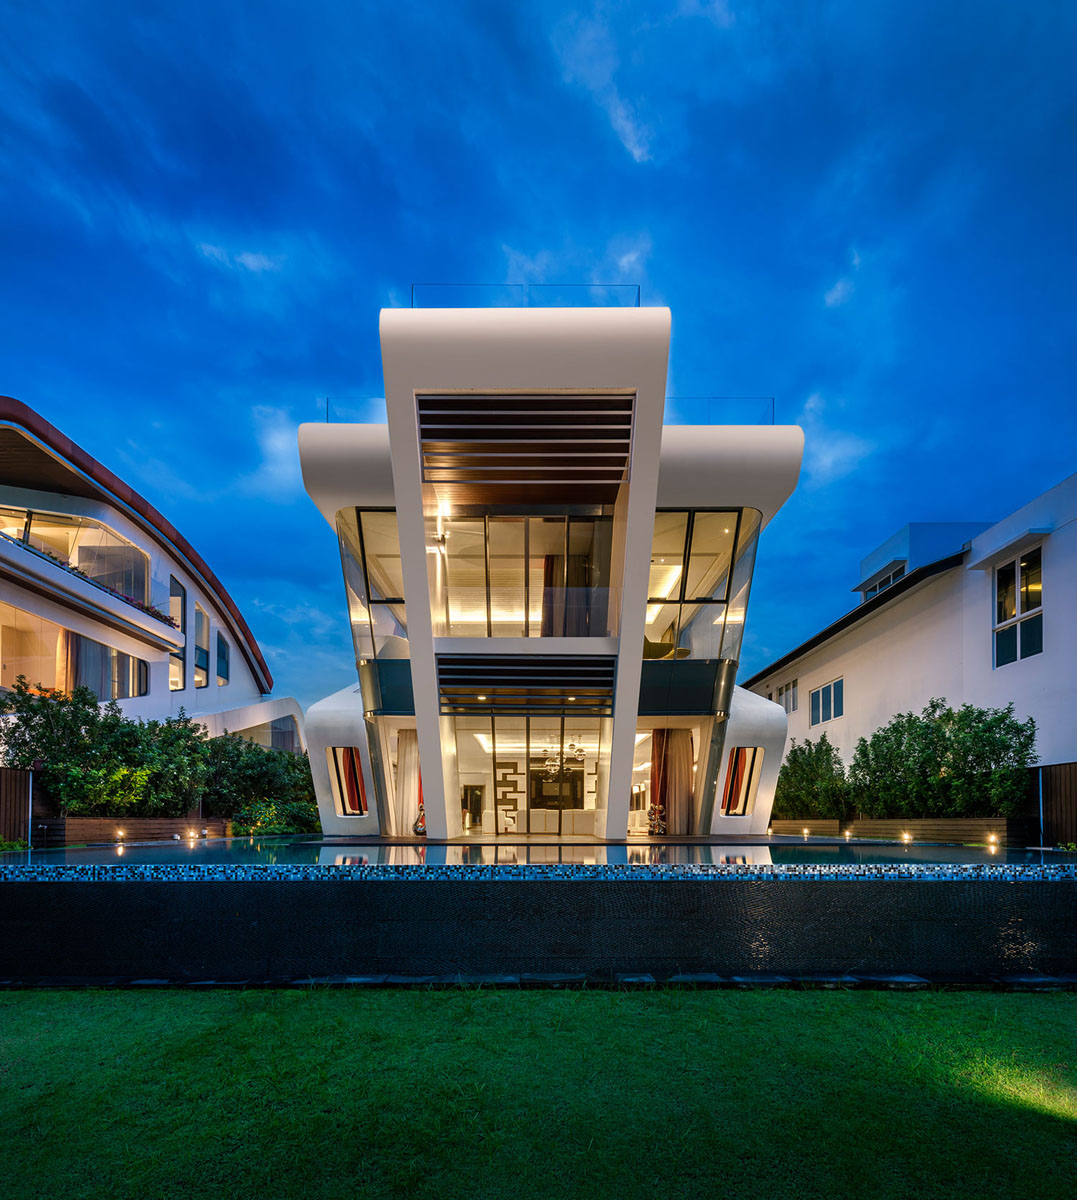 Home Design Ideas Architecture: One Of A Kind Modern Residential Villa In Singapore